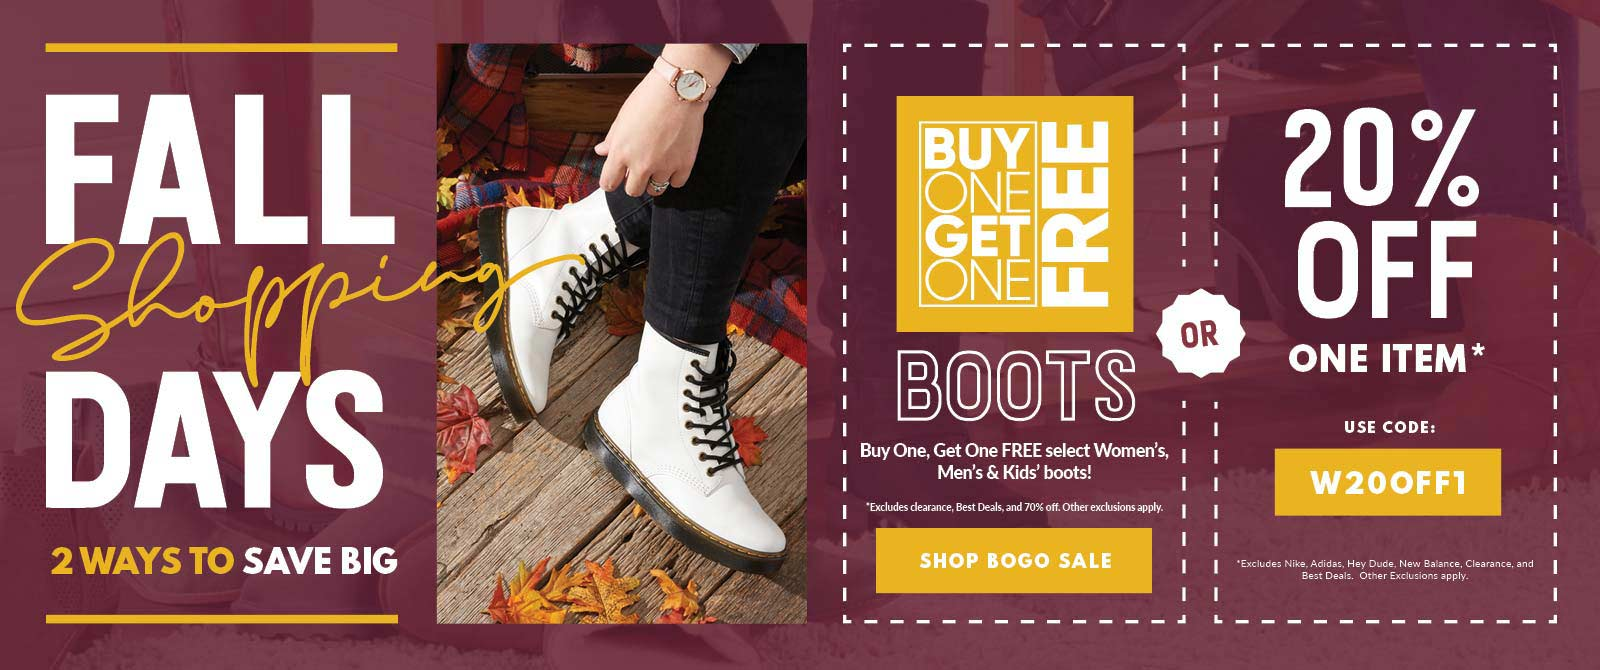 Buy One Get One Free Boots!